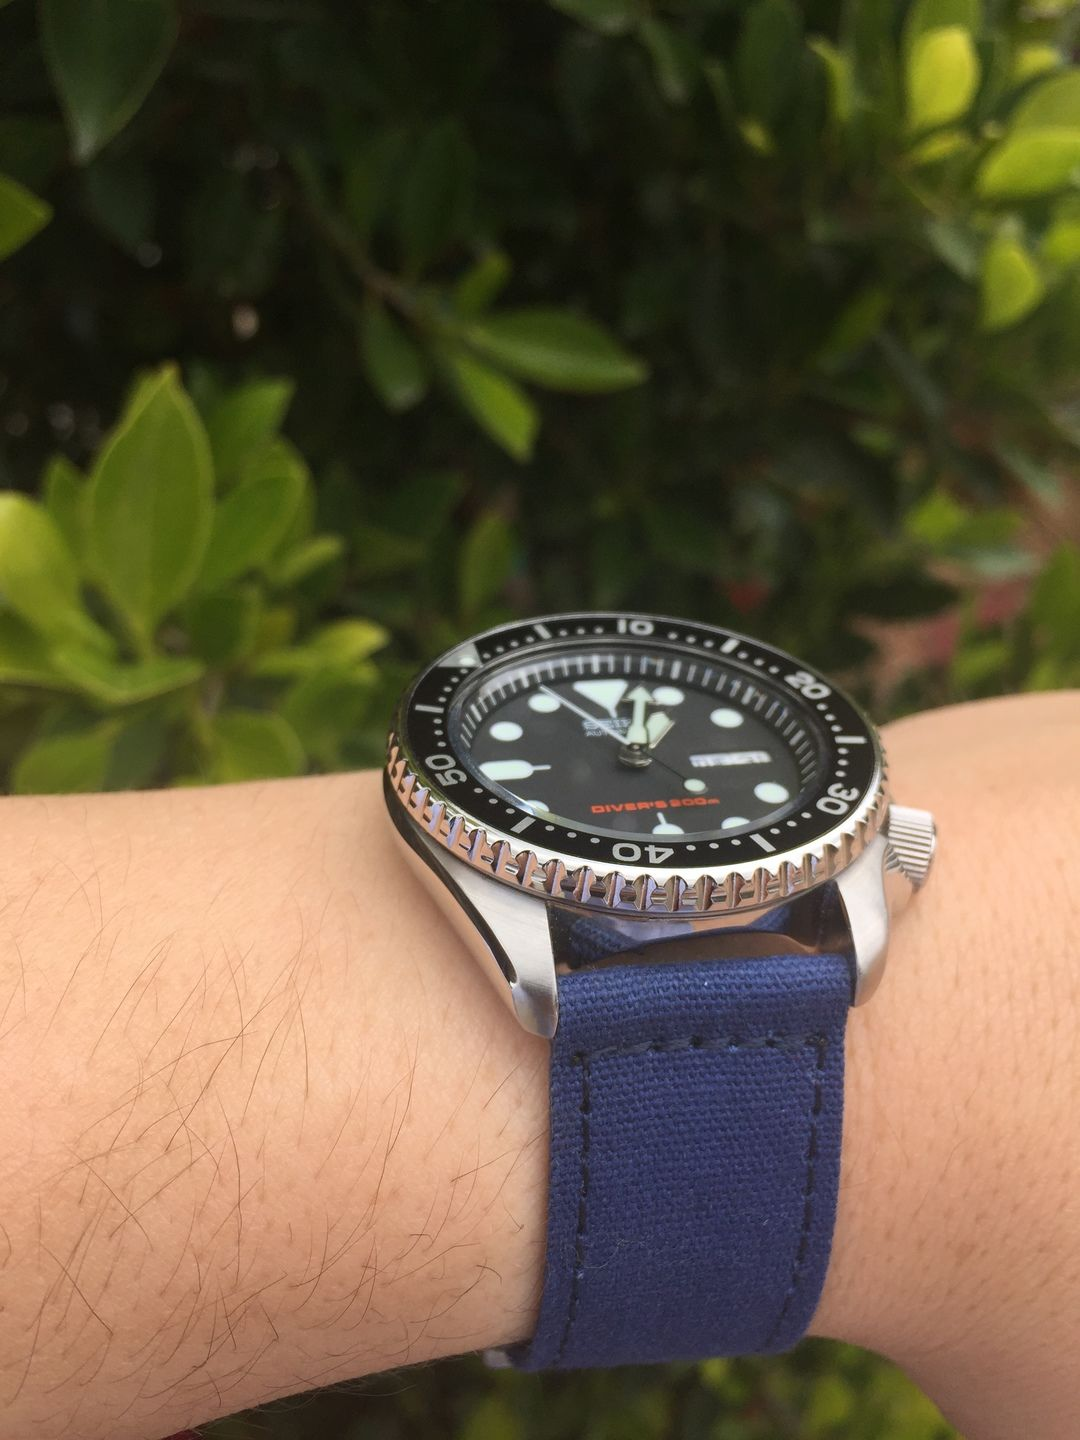 Black face worn with a blue canvasoft band